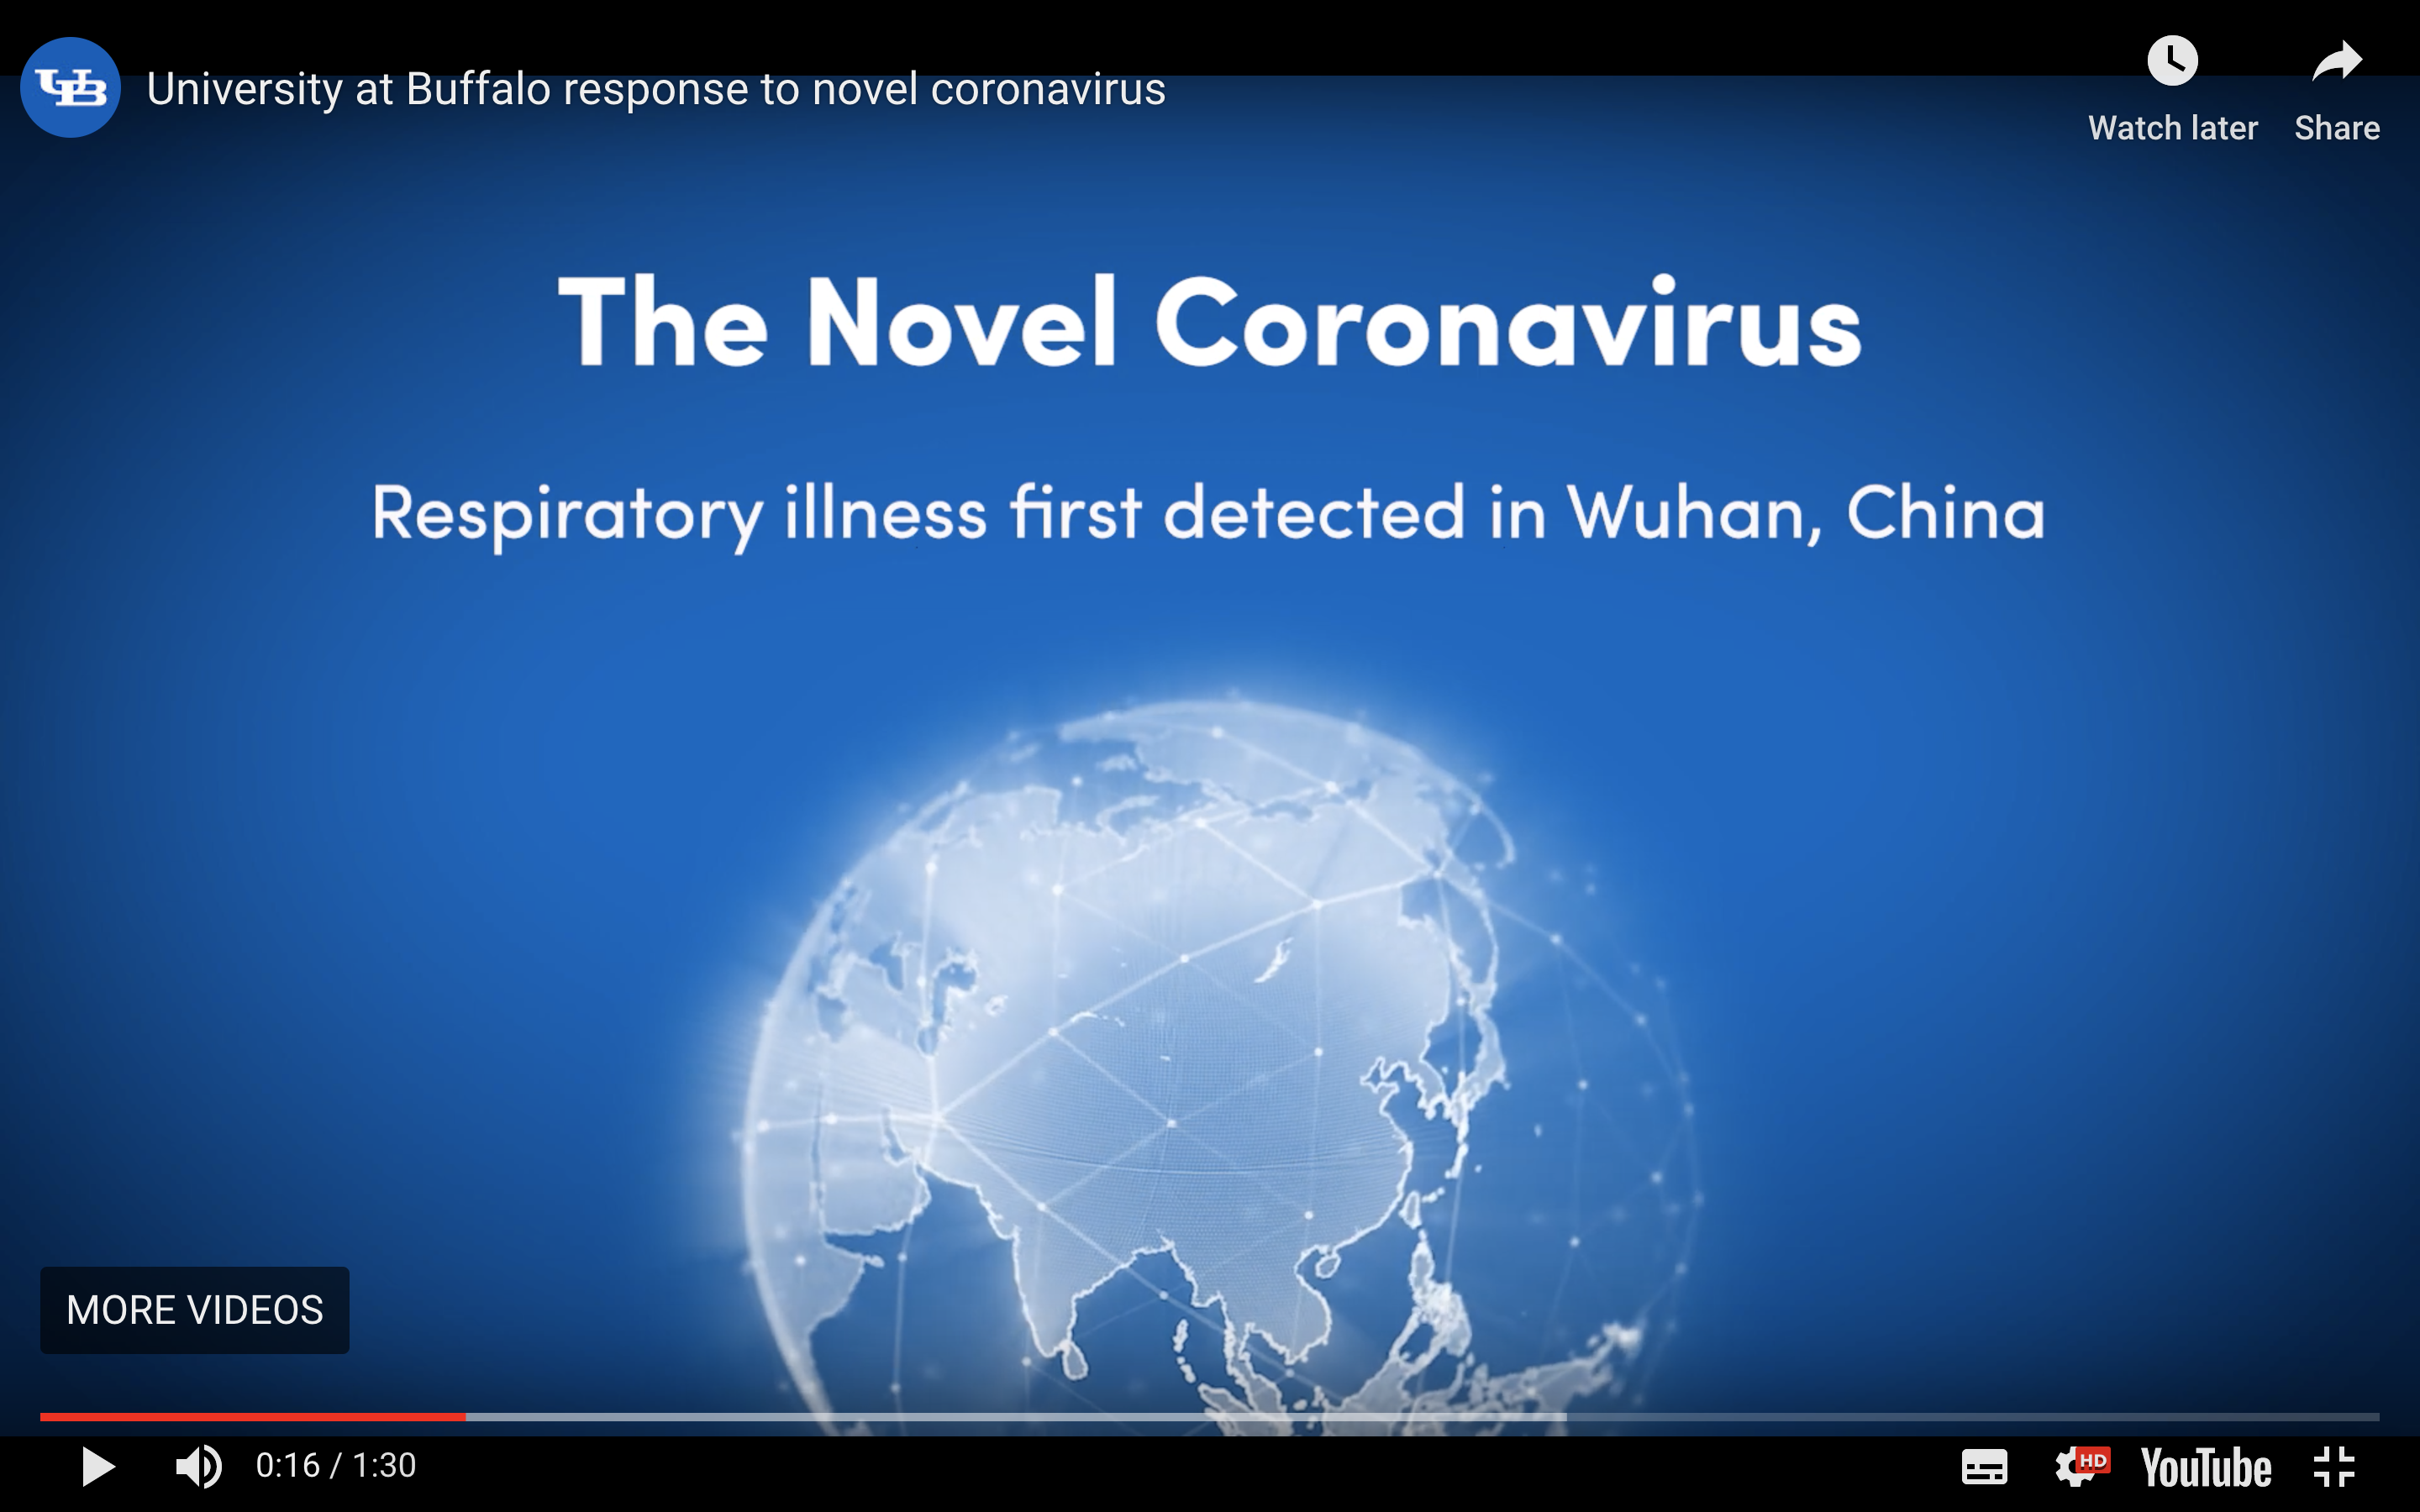 A screenshot of the coronavirus informational video produced by the University at Buffalo.